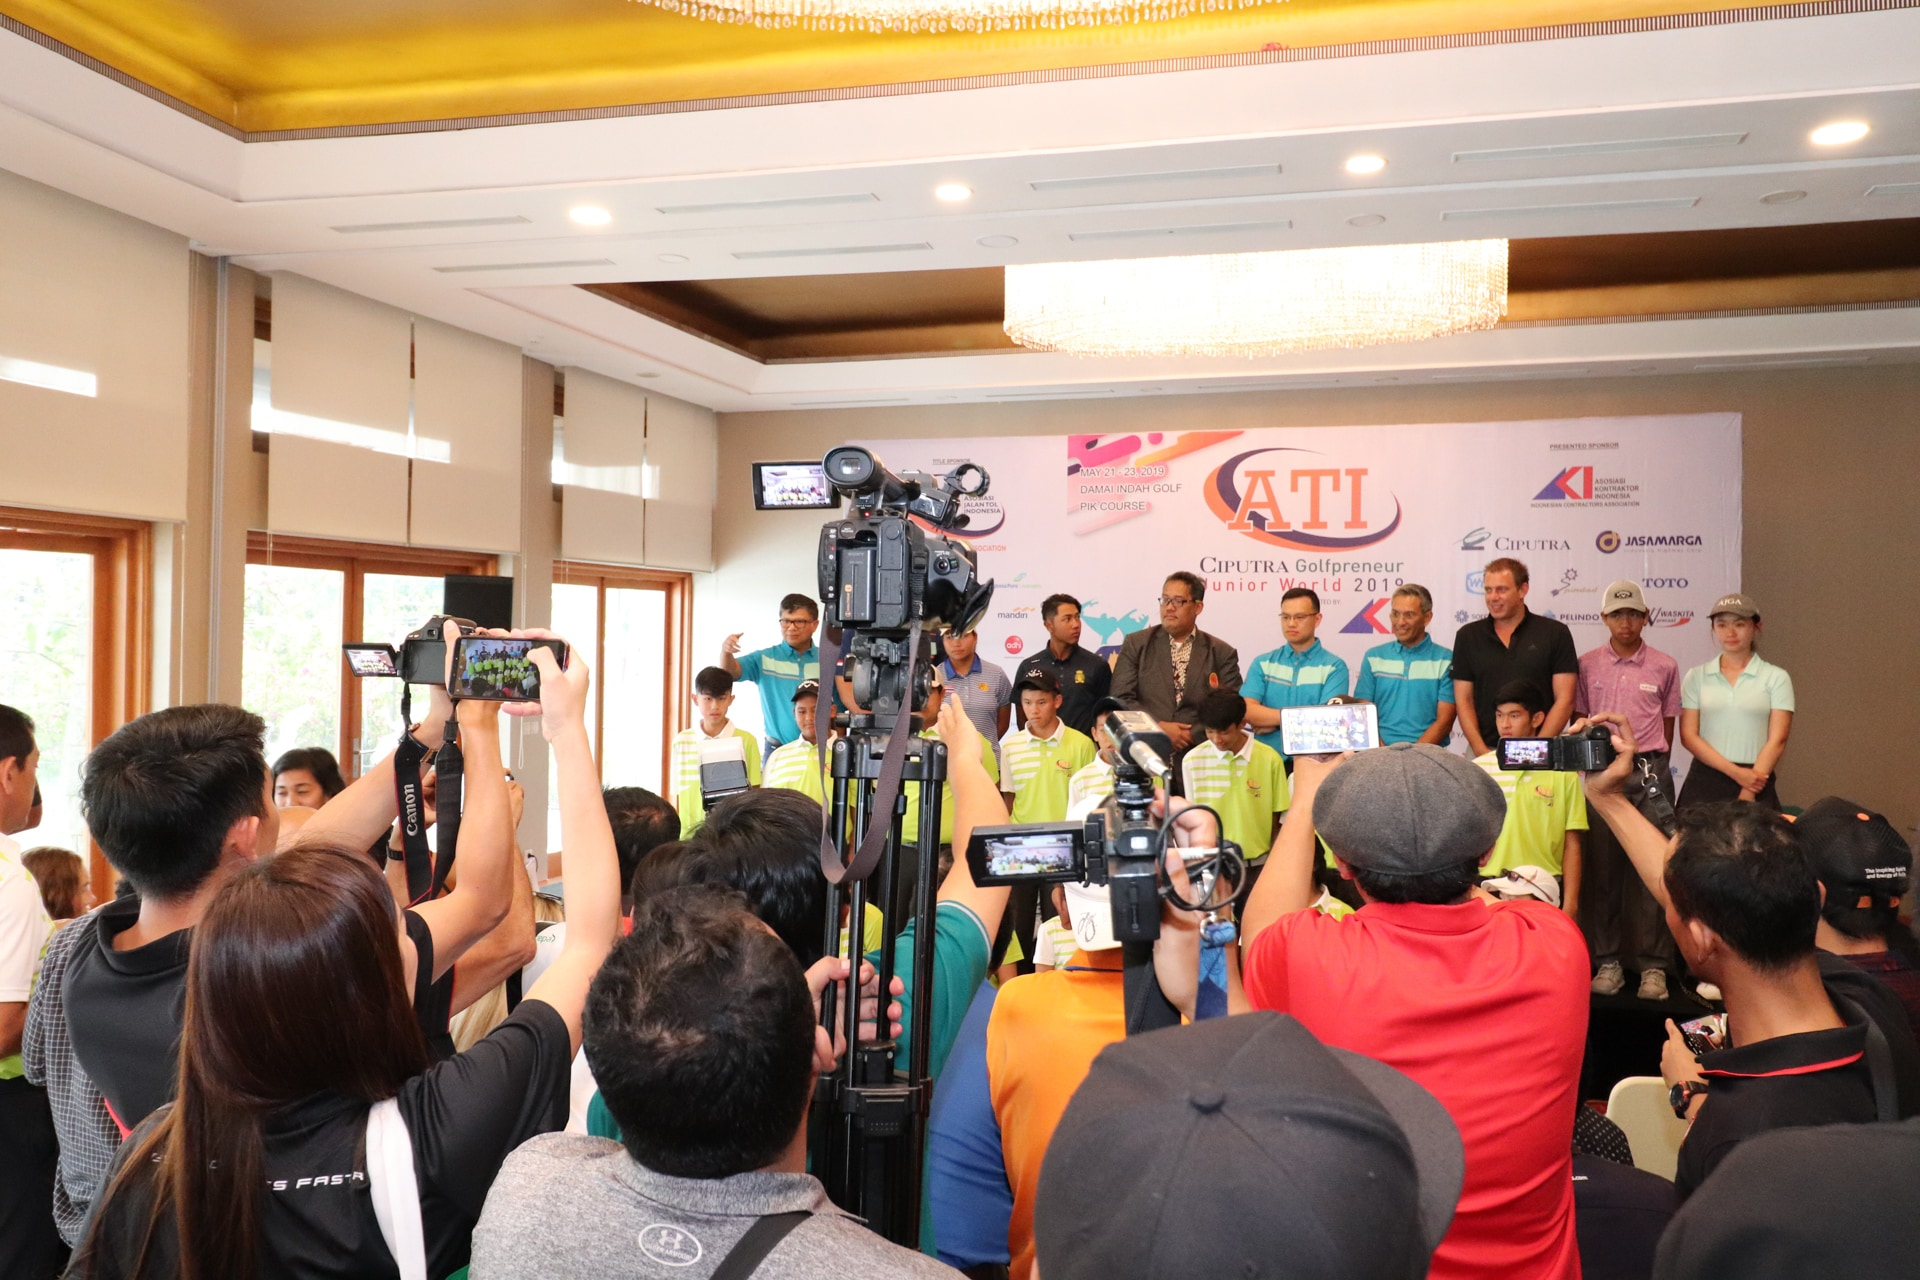 Dozens of media officials from Indonesia gathering JGTA News for their publications at the #JGTACiputra Press Conference